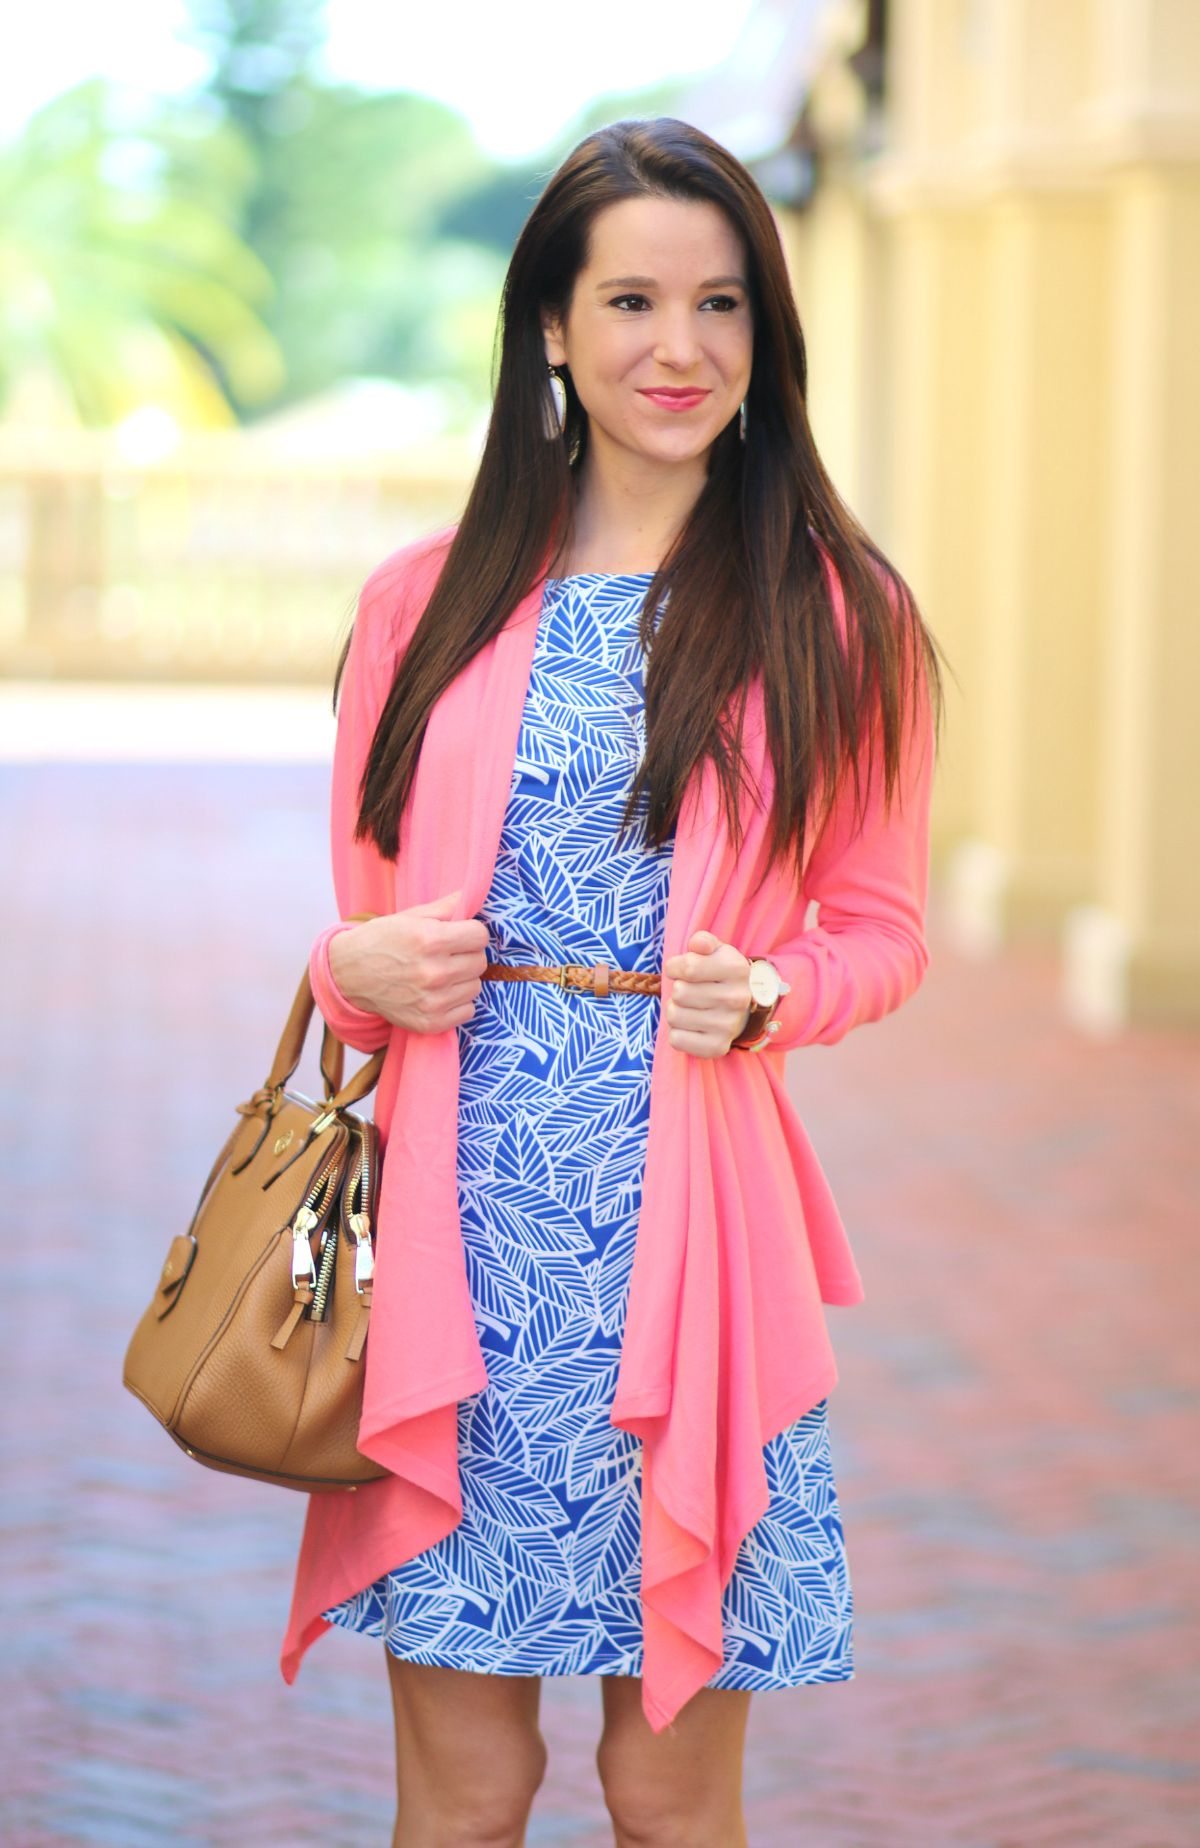 Floridian Fall Style: Coral Waterfall Cardigan   Style, Belts and ...